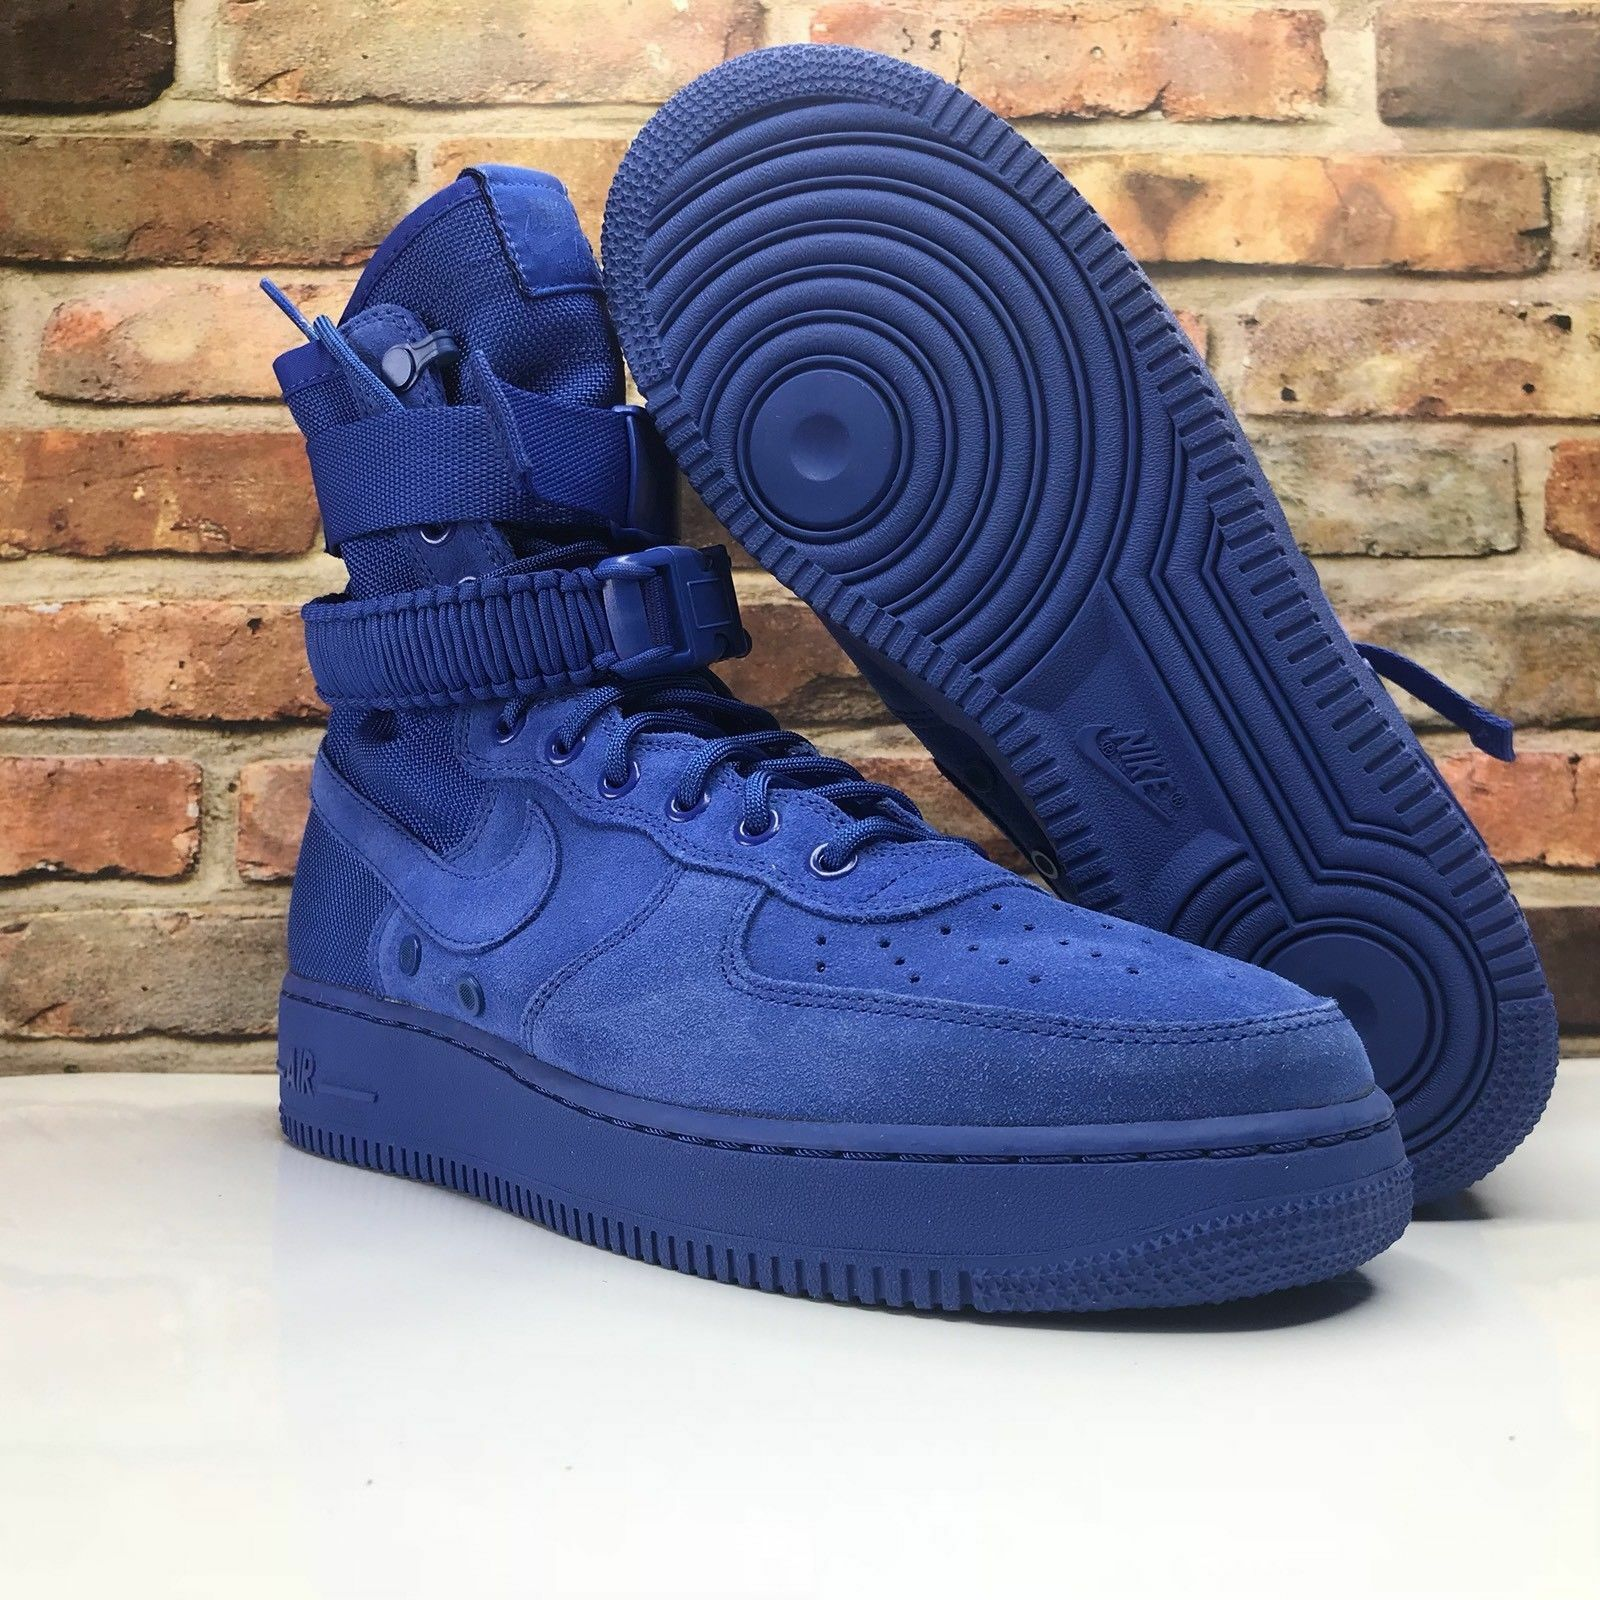 NEW Nike SF Air Force 1 Mens 864024-401 Game Royal bluee Nylon Suede shoes Size 9